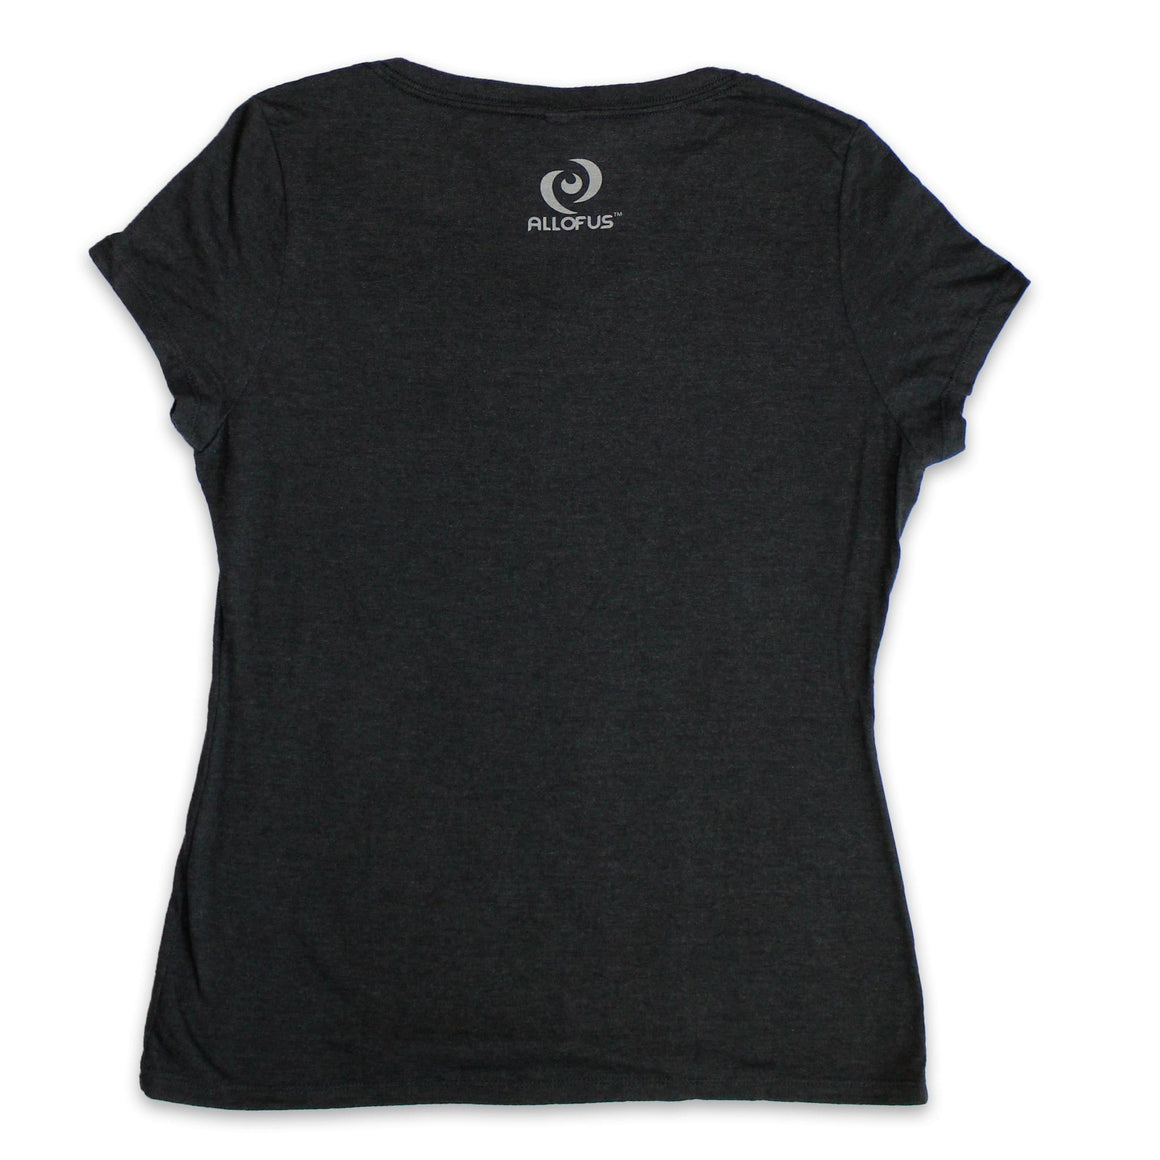 Women's Classic Black Frost V-Neck Tee with White All of Us print